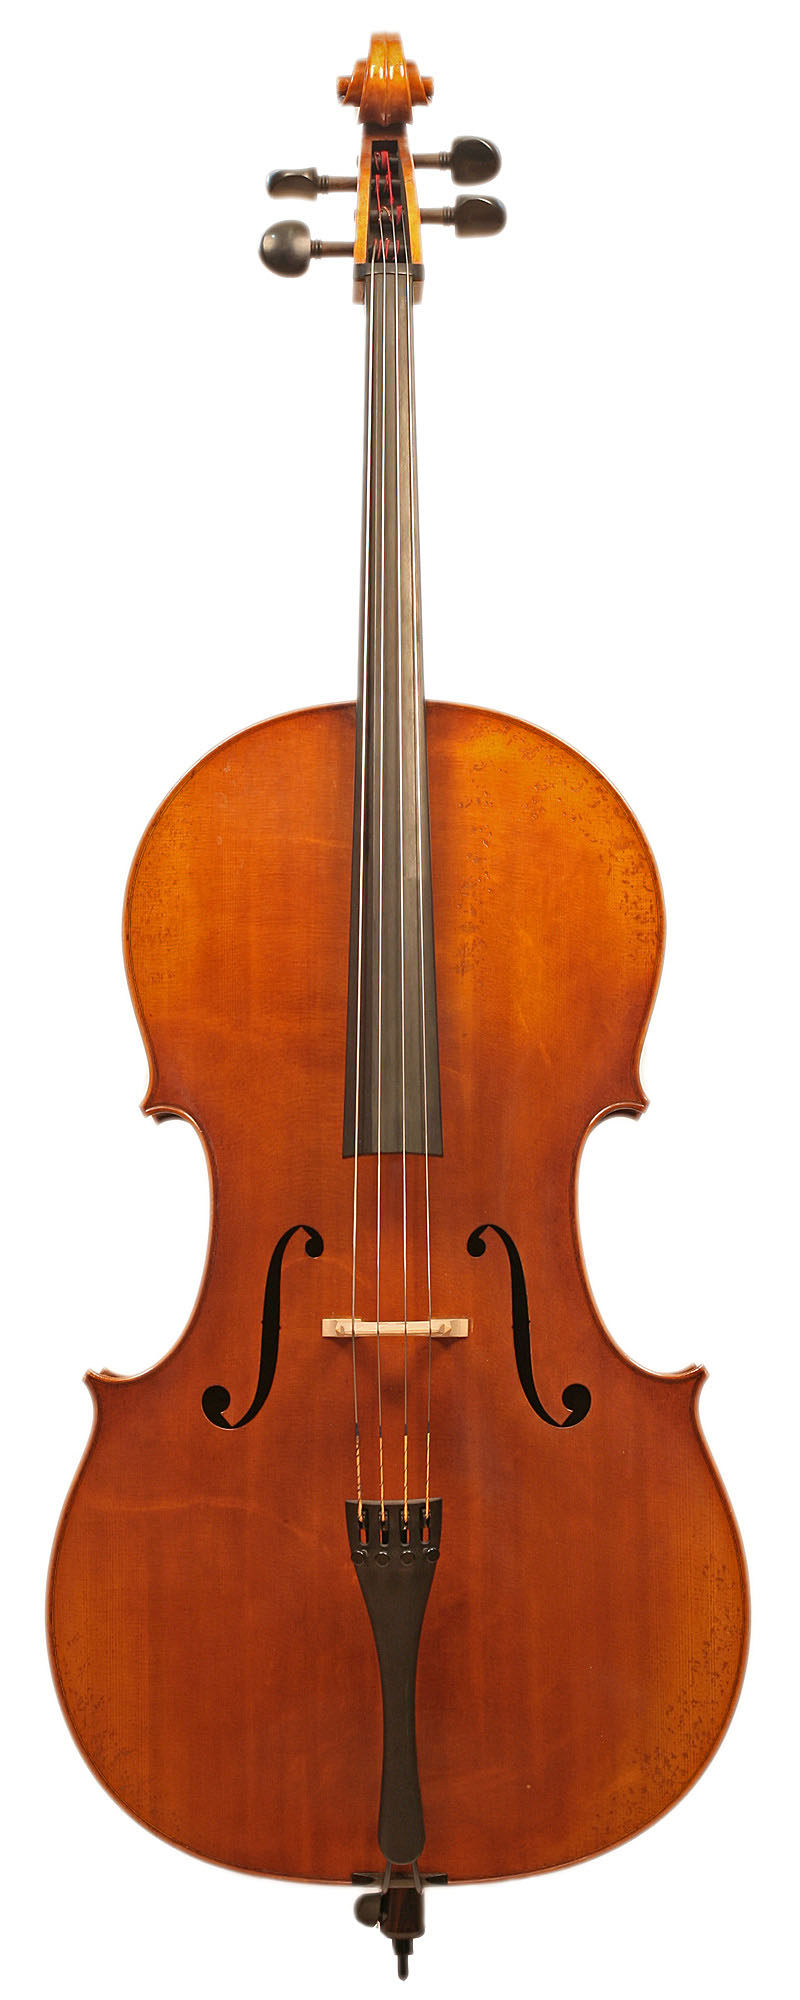 Lakemont Cello, made by David Yin